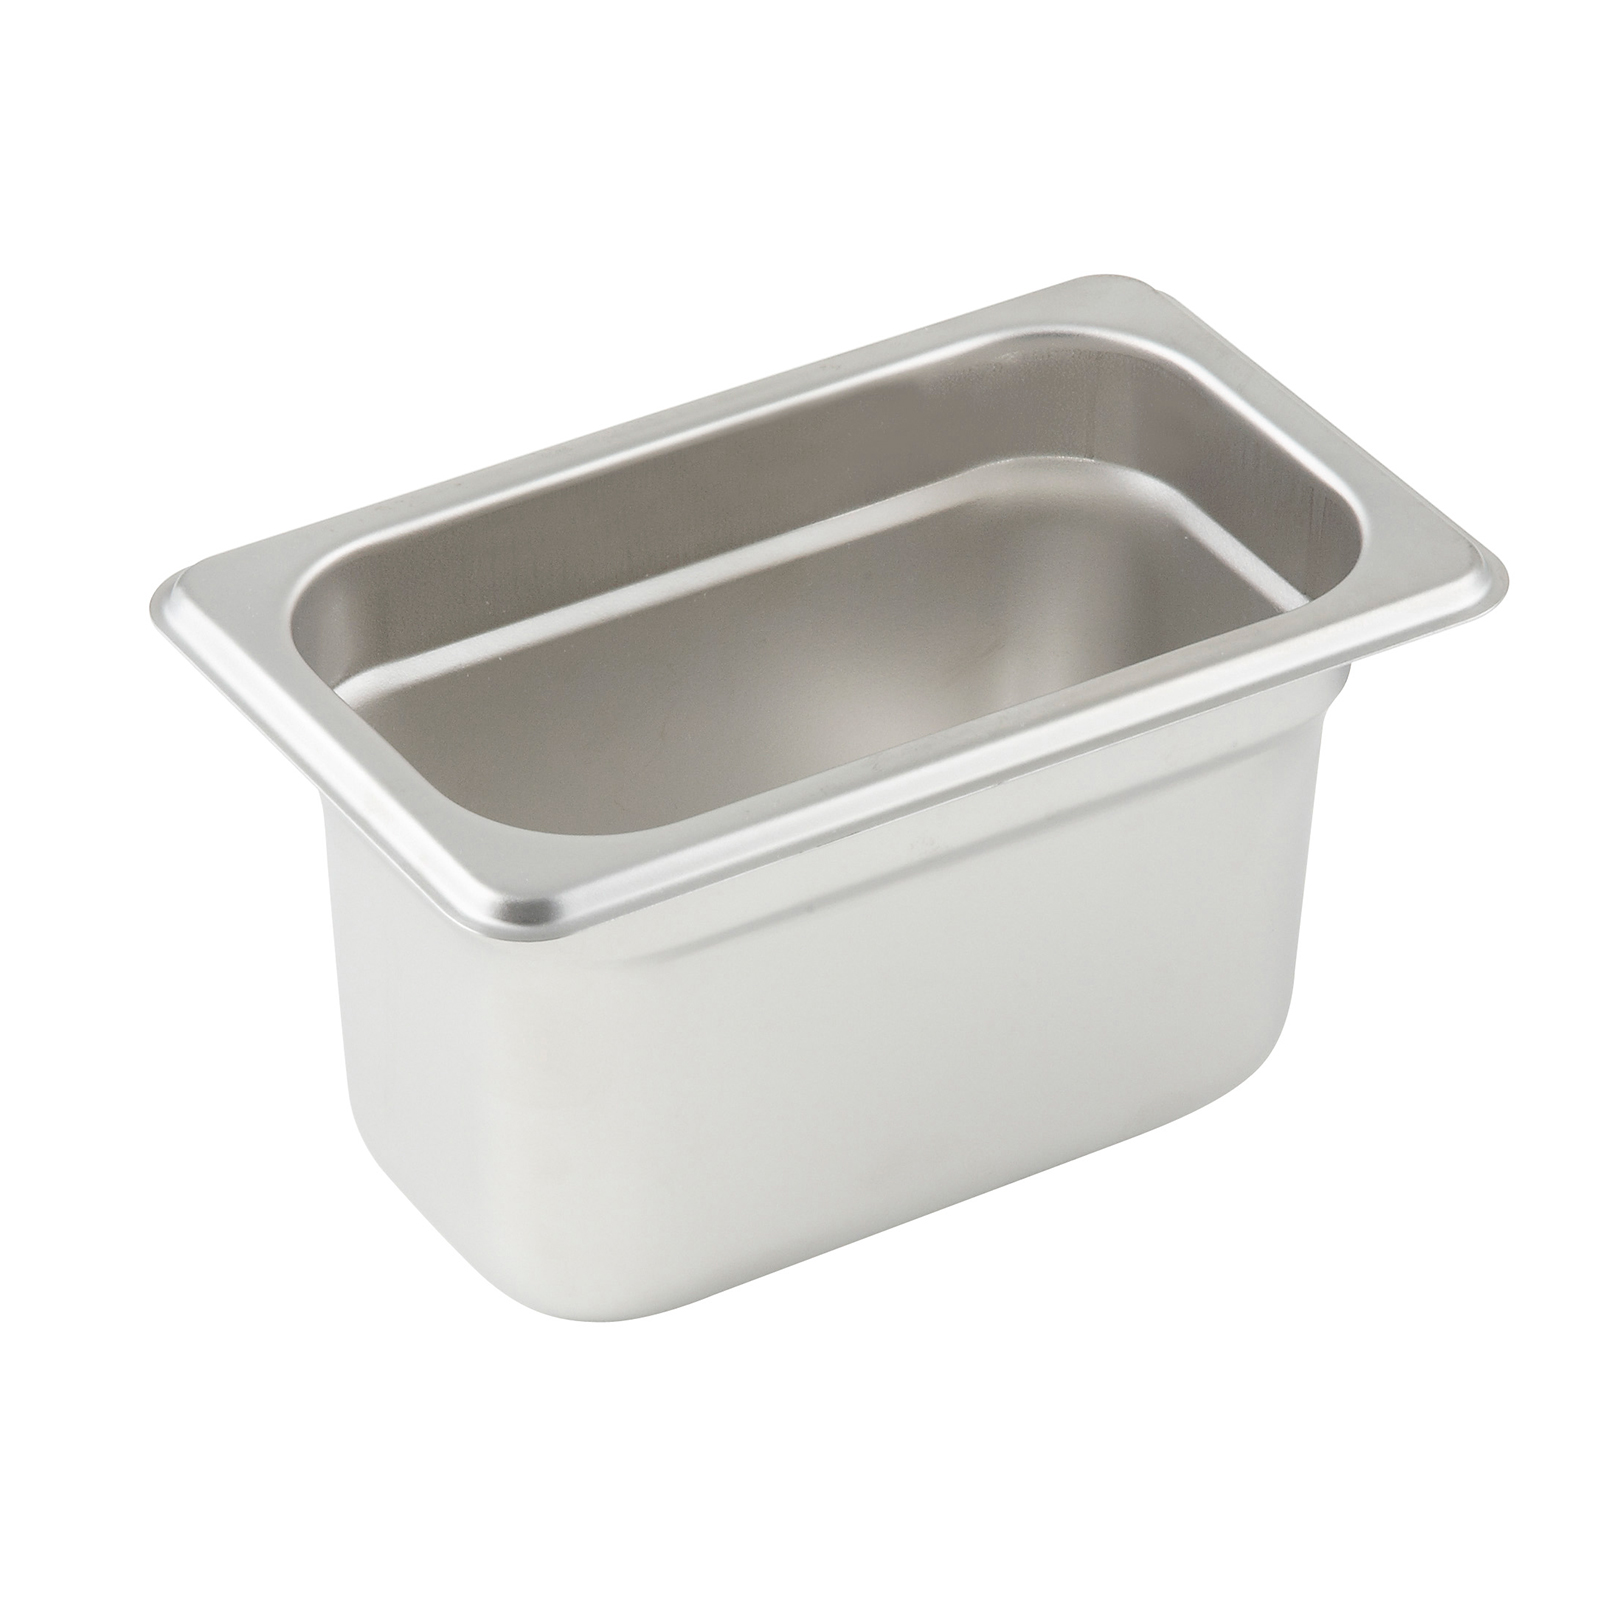 Winco SPJP-904 steam table pan, stainless steel